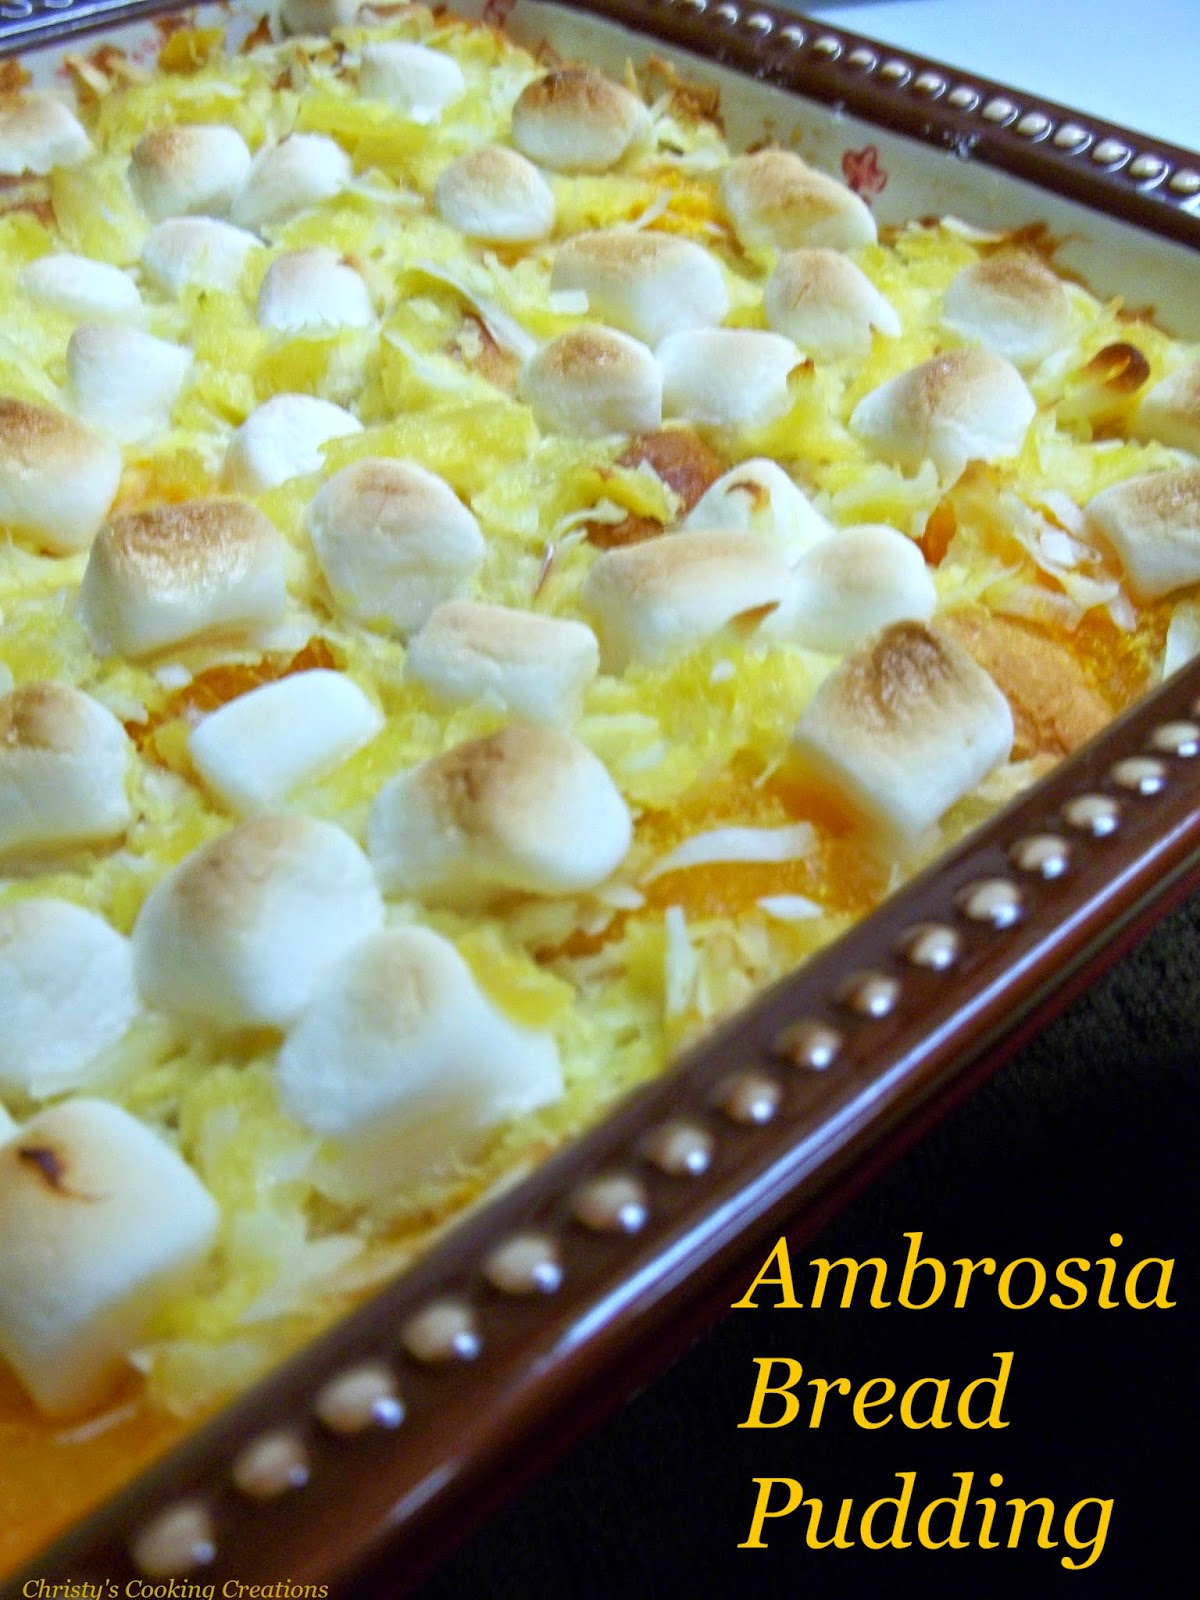 how to make ambrosia salad with pistachio pudding